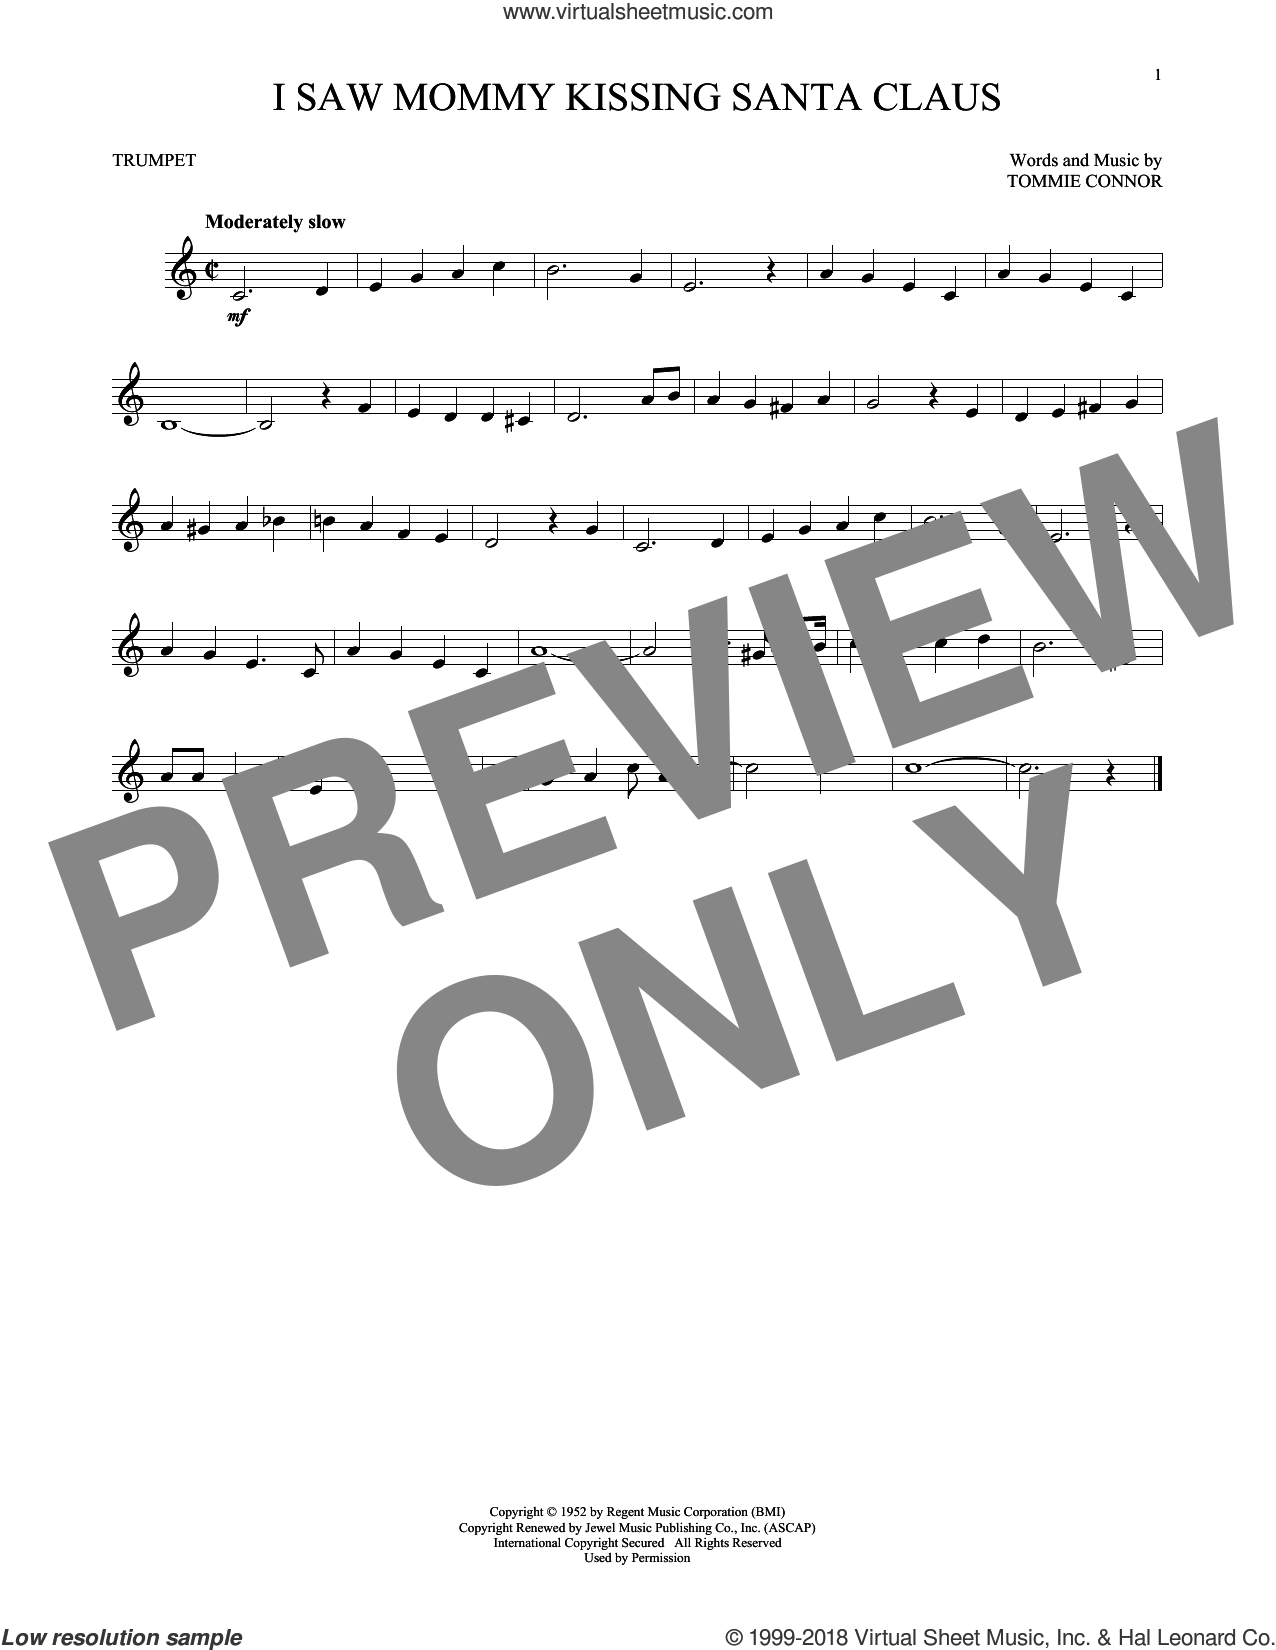 I Saw Mommy Kissing Santa Claus sheet music for trumpet solo by Tommie Connor, intermediate skill level